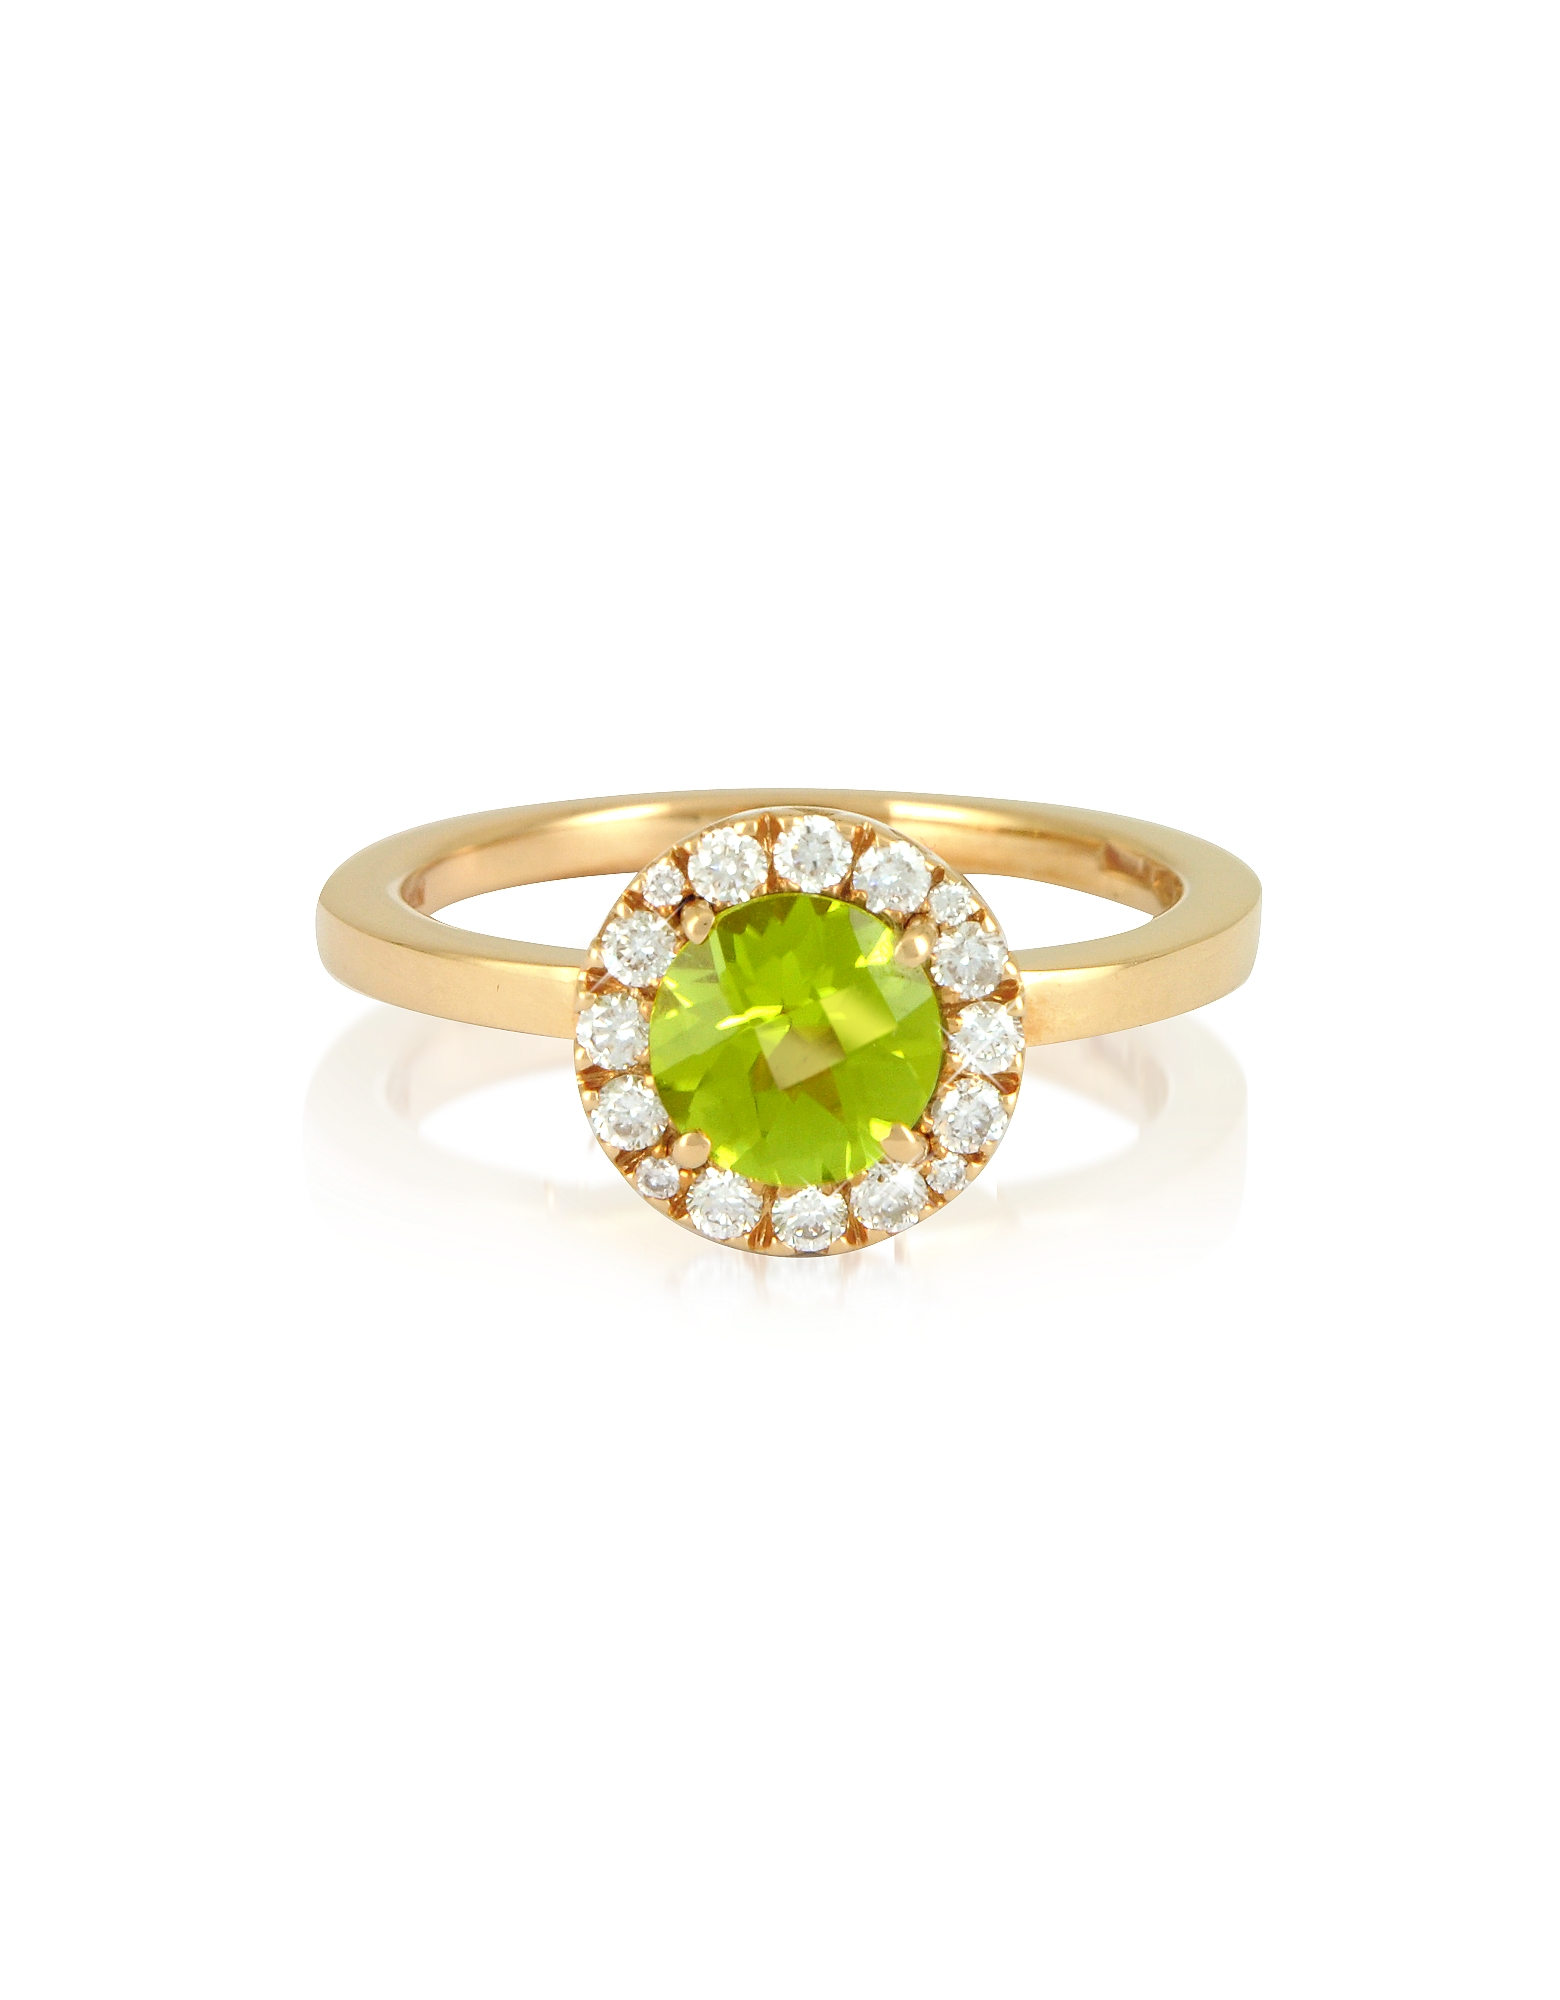 Image of 0.22 ct Diamond Pave 18K Gold Ring w/Green Peridot is dazzling with a vintage inspired design, 18K gold band, sixteen sparkling diamonds surrounding a round green peridot stone and a smooth polished finish. Made in Italy. fz410415-028-00